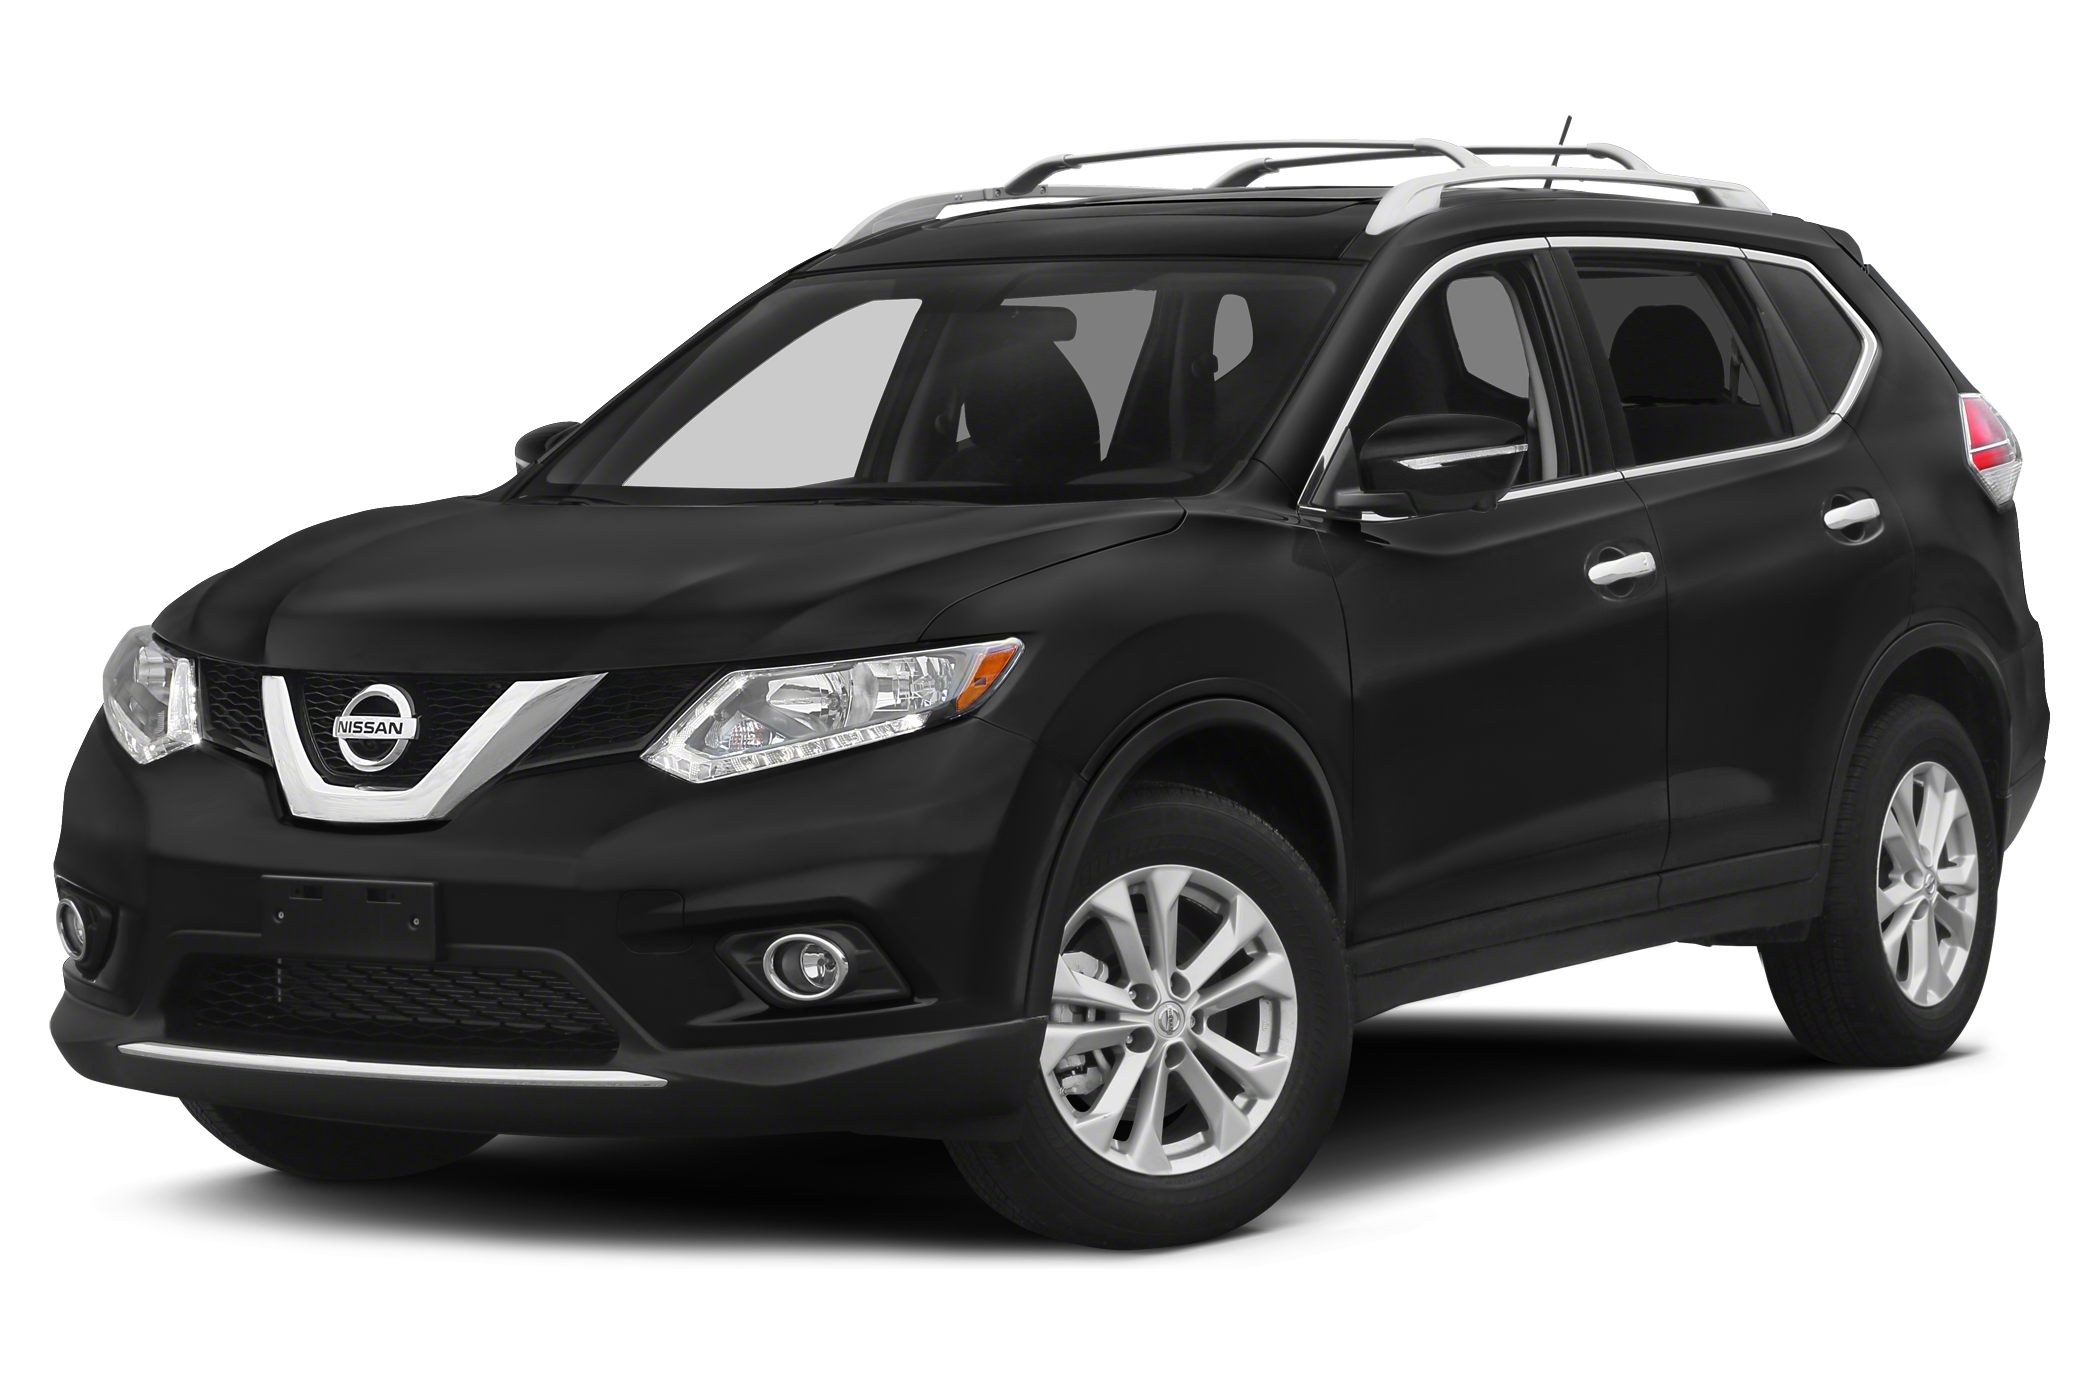 2015 Nissan Rogue SL SUV for sale in Erie for $33,150 with 0 miles.